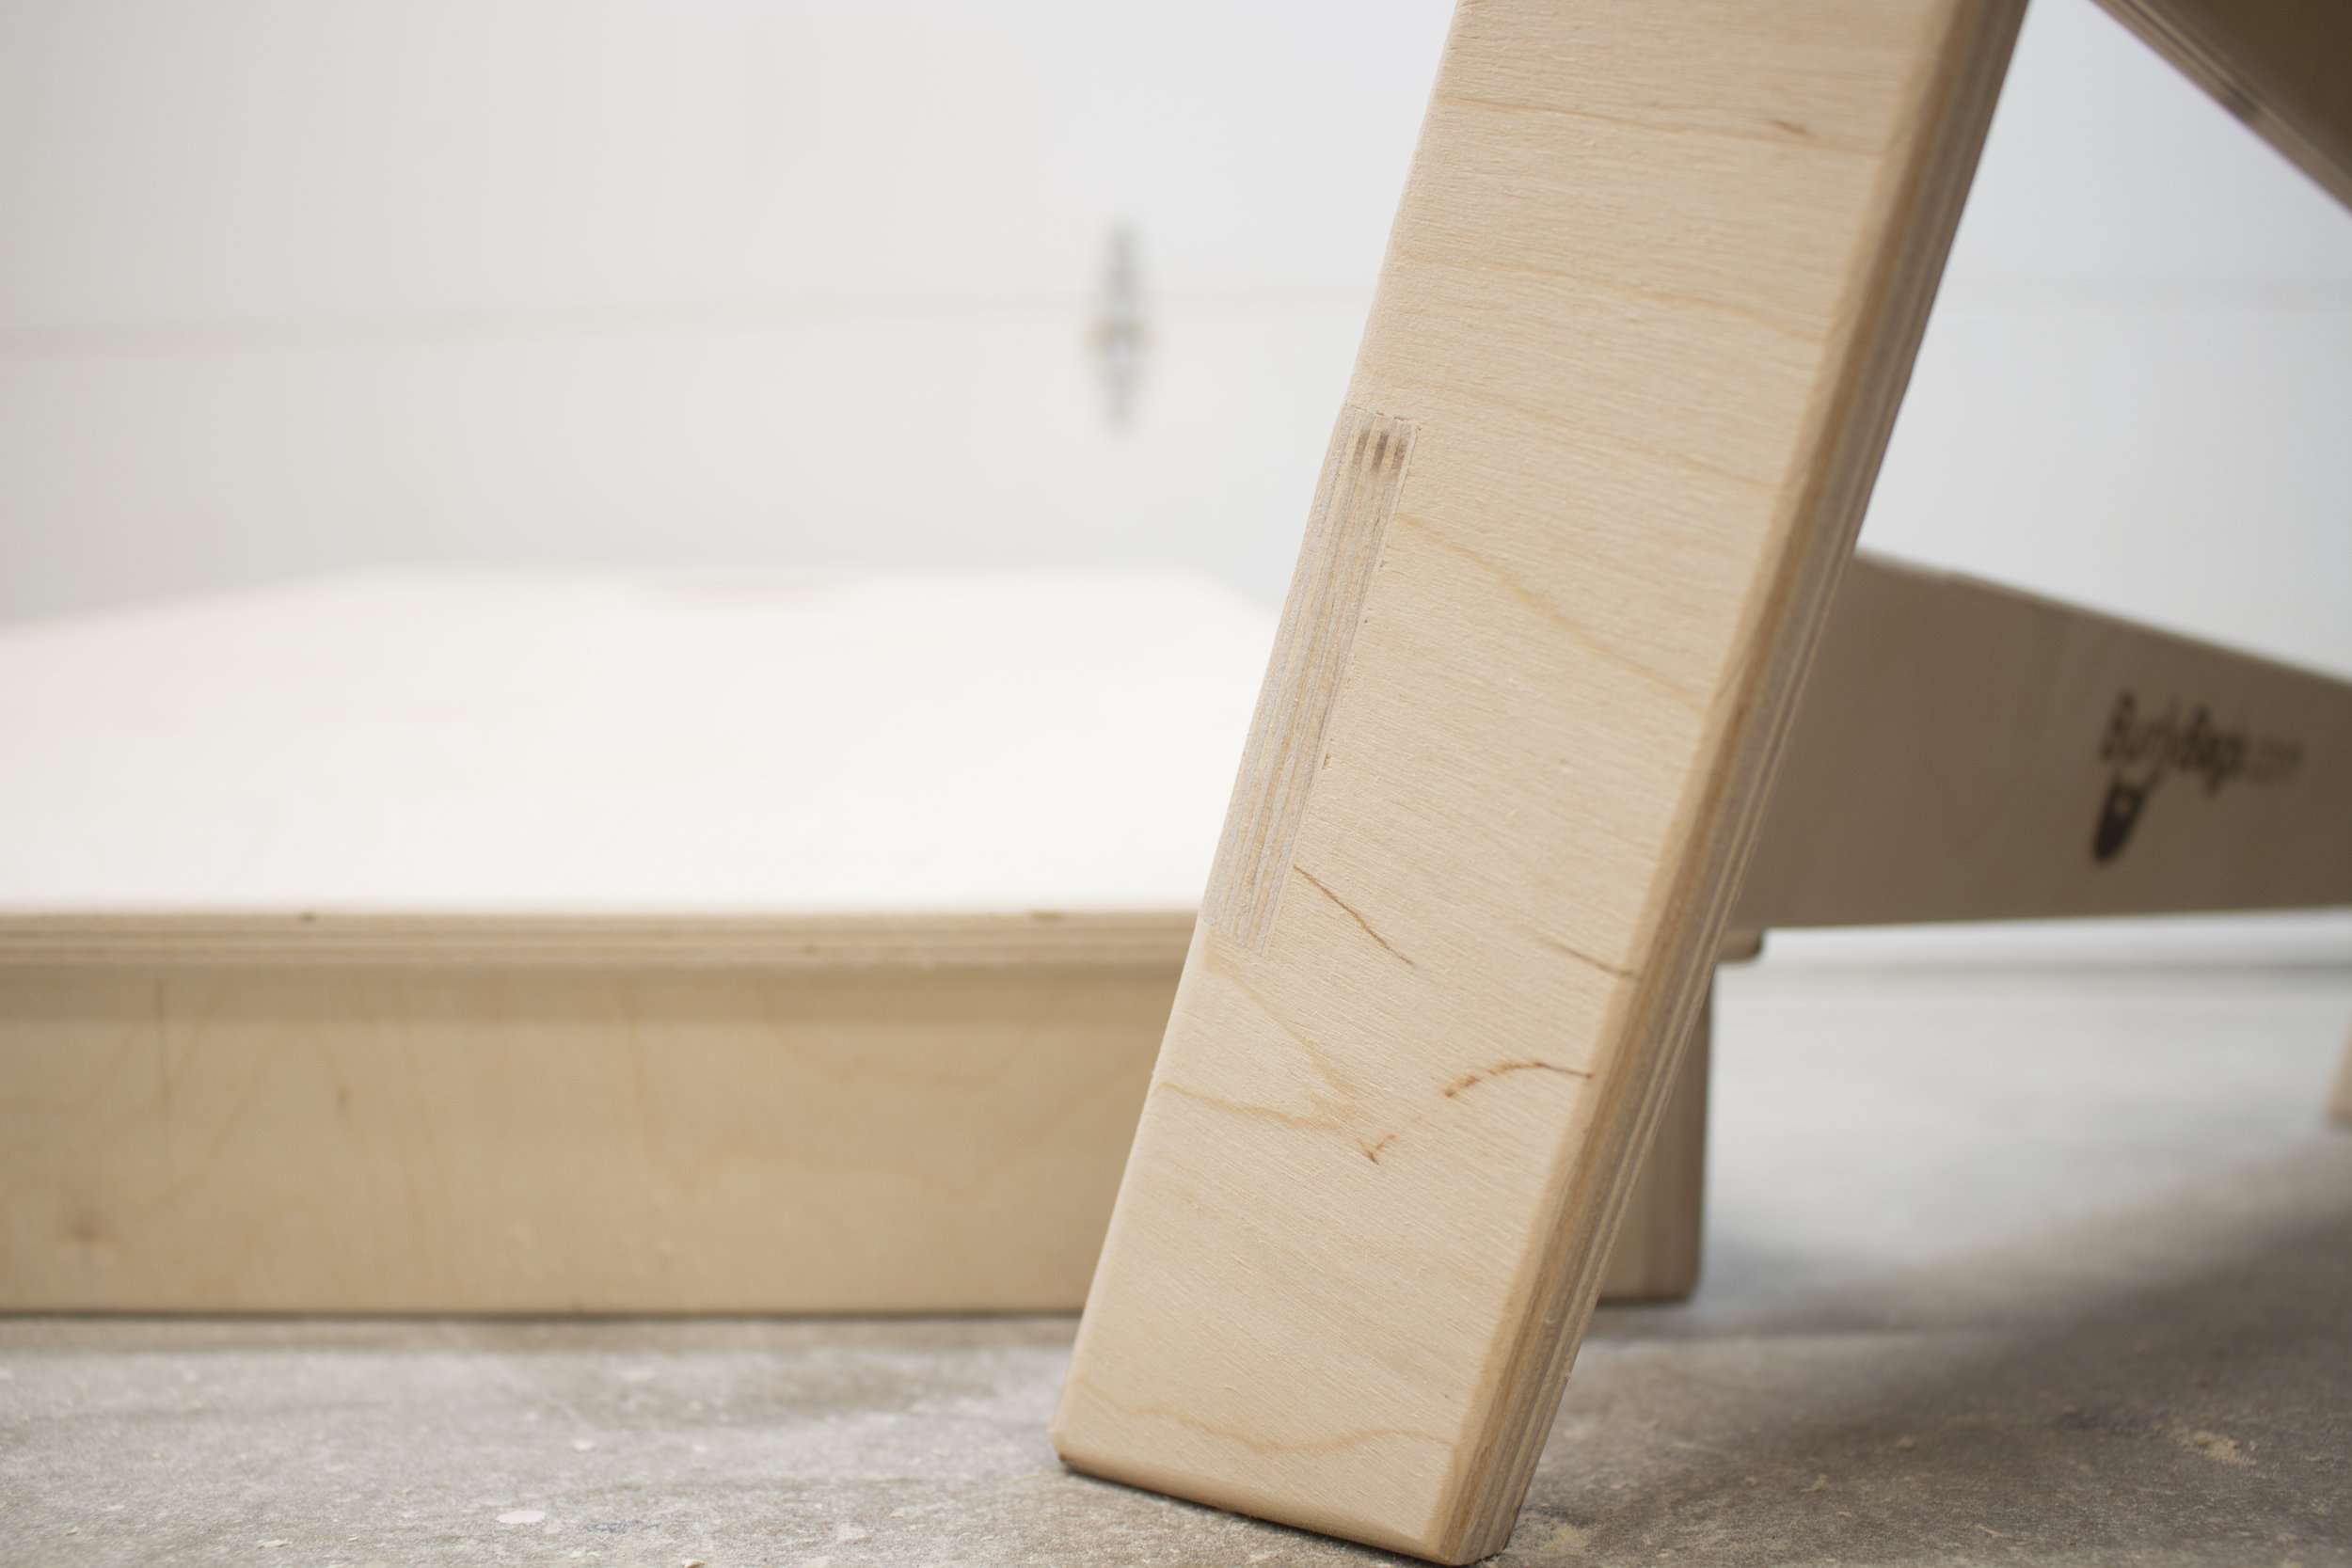 Lap Joint legs for additional strength and stability.